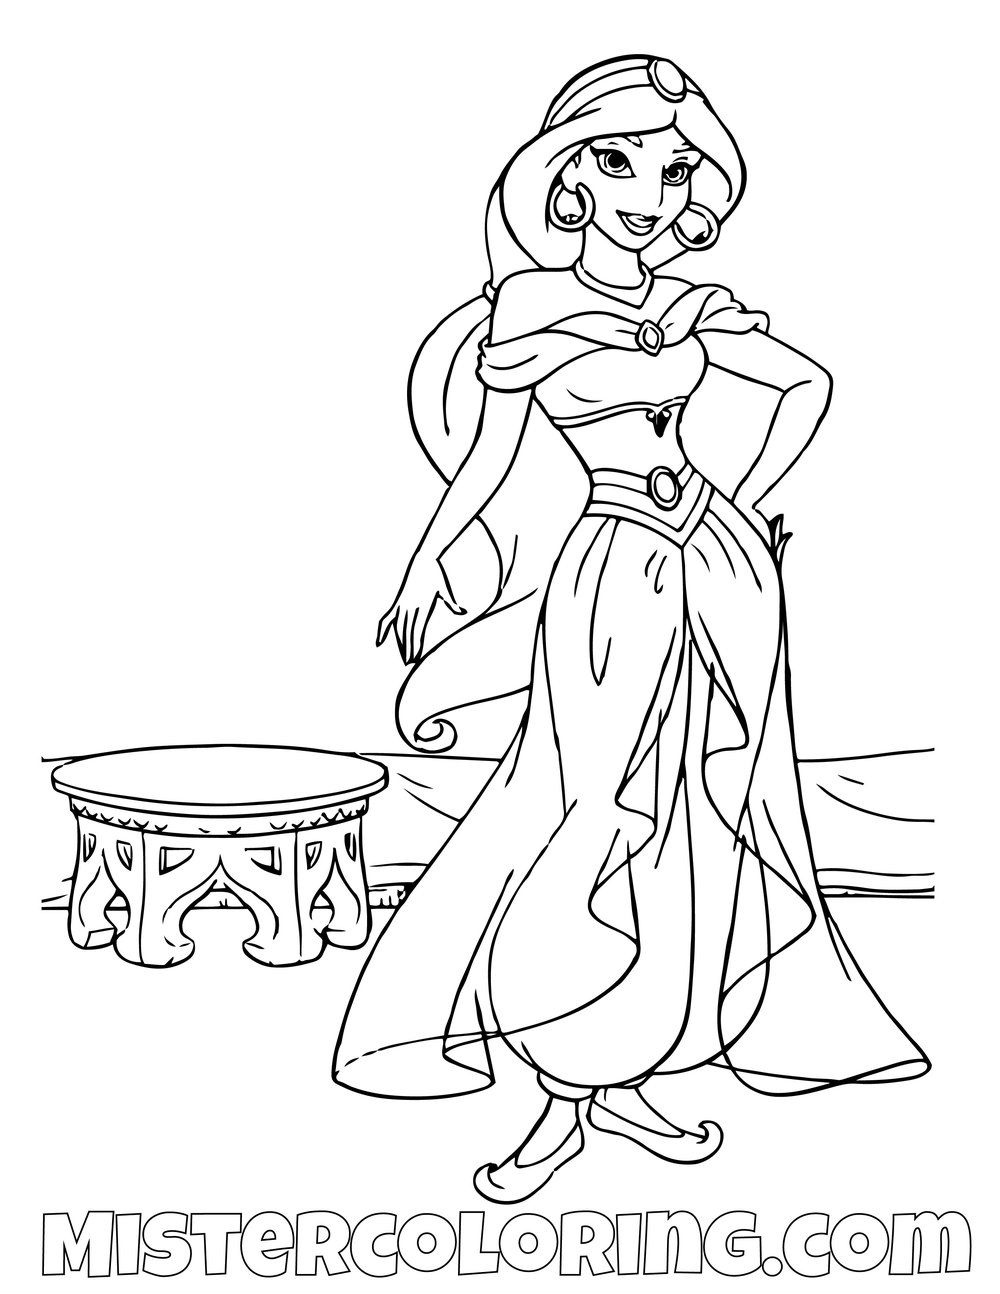 Princess Jasmine Posing Aladdin Coloring Page Disney Princess Coloring Pages Disney Coloring Pages Princess Coloring Pages